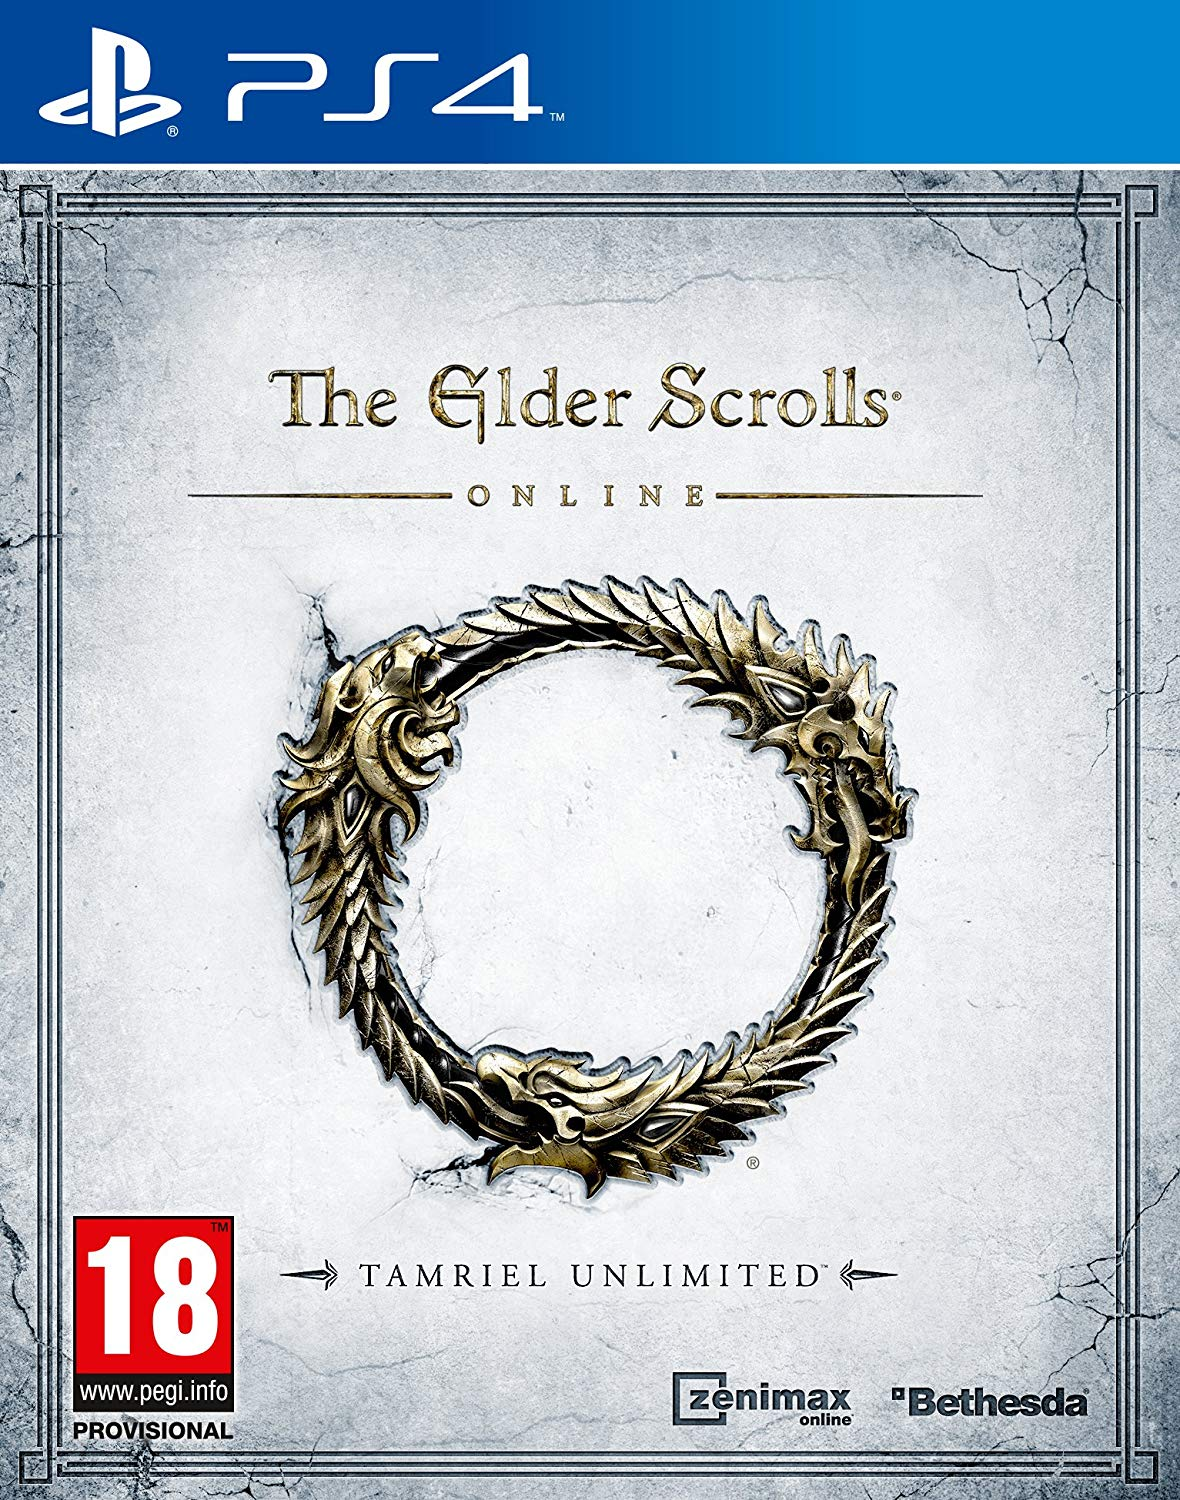 THE ELDER SCROLLS ONLINE: TAMRIEL UNLIMITED - PS4